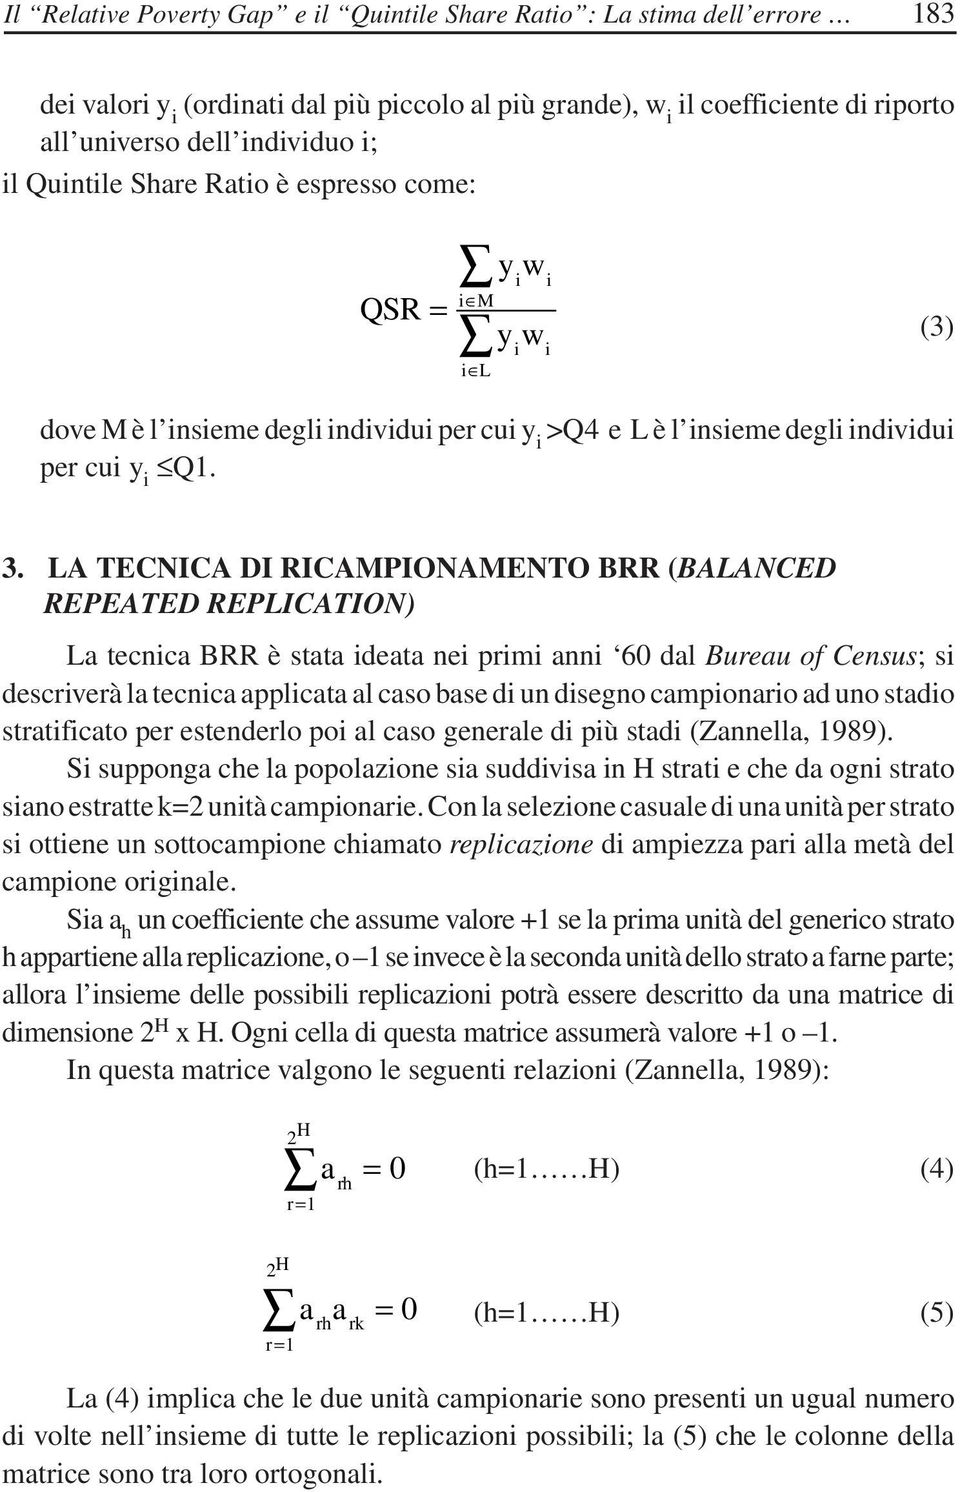 LA TECNICA DI RICAMPIONAMENTO BRR (BALANCED REPEATED REPLICATION) La tecnica BRR è stata ideata nei primi anni 60 dal Bureau of Census; si descriverà la tecnica applicata al caso base di un disegno